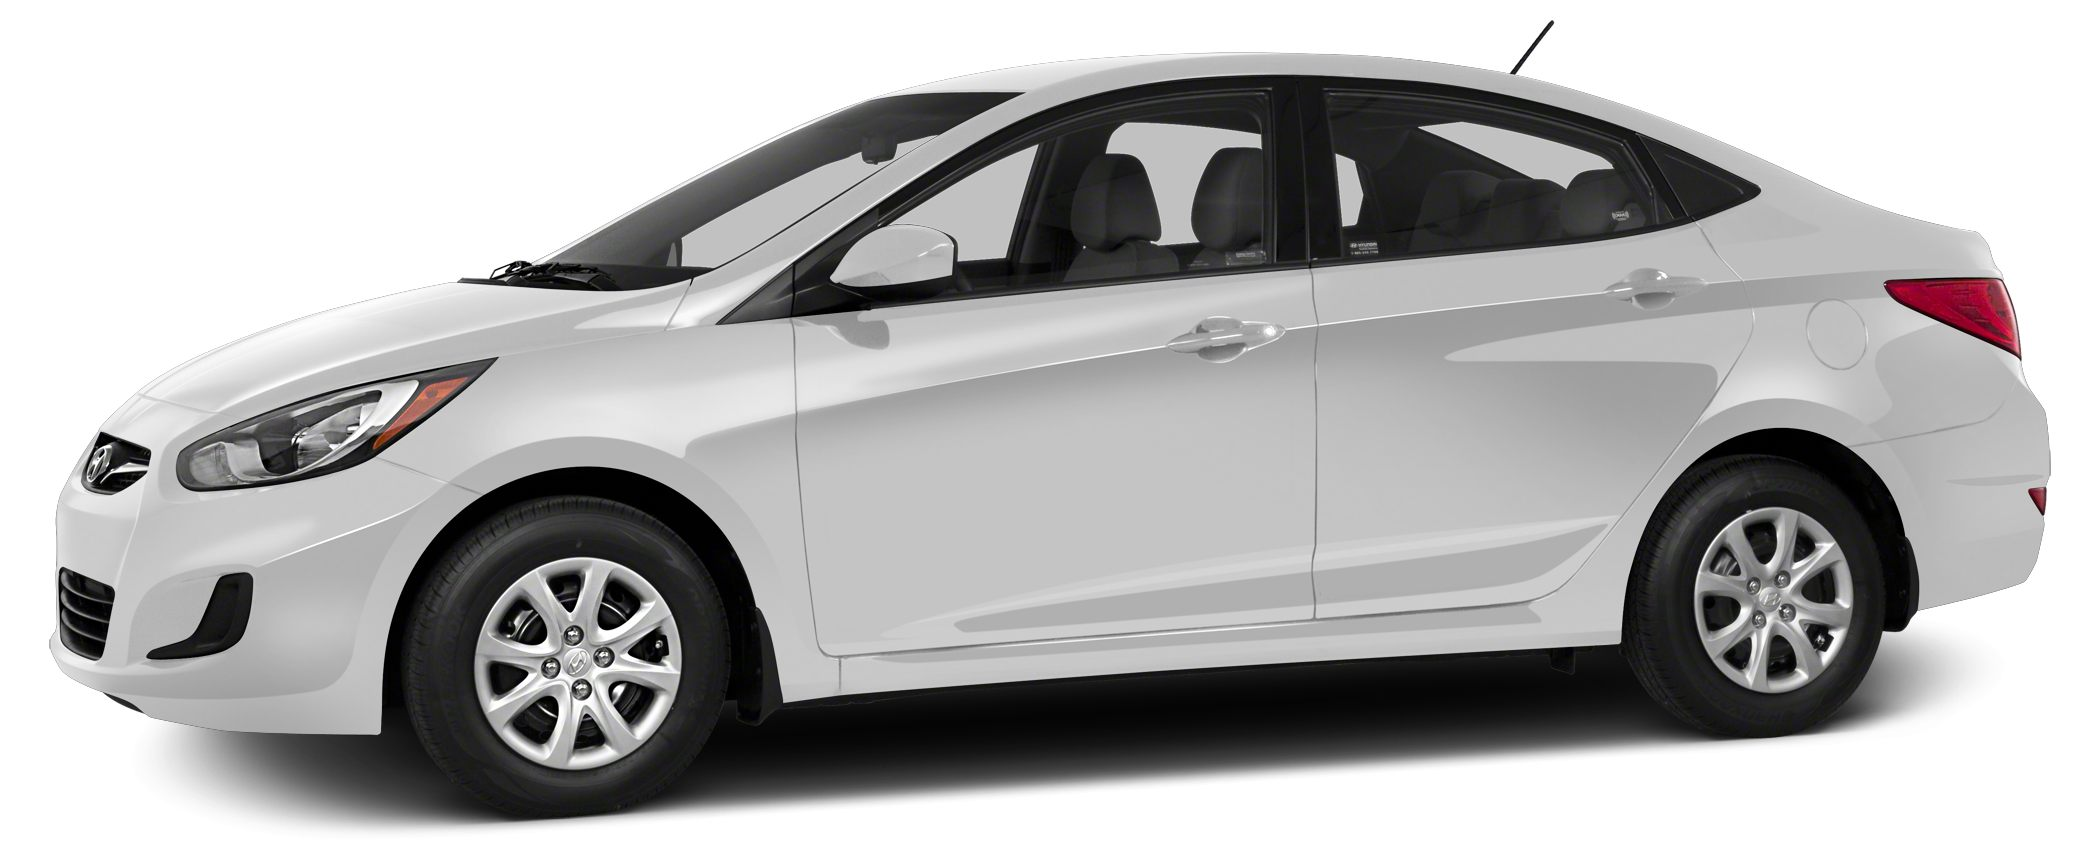 2013 Hyundai Accent GLS Lifetime Engine Warranty at NO CHARGE on all pre-owned vehicles Courtesy A